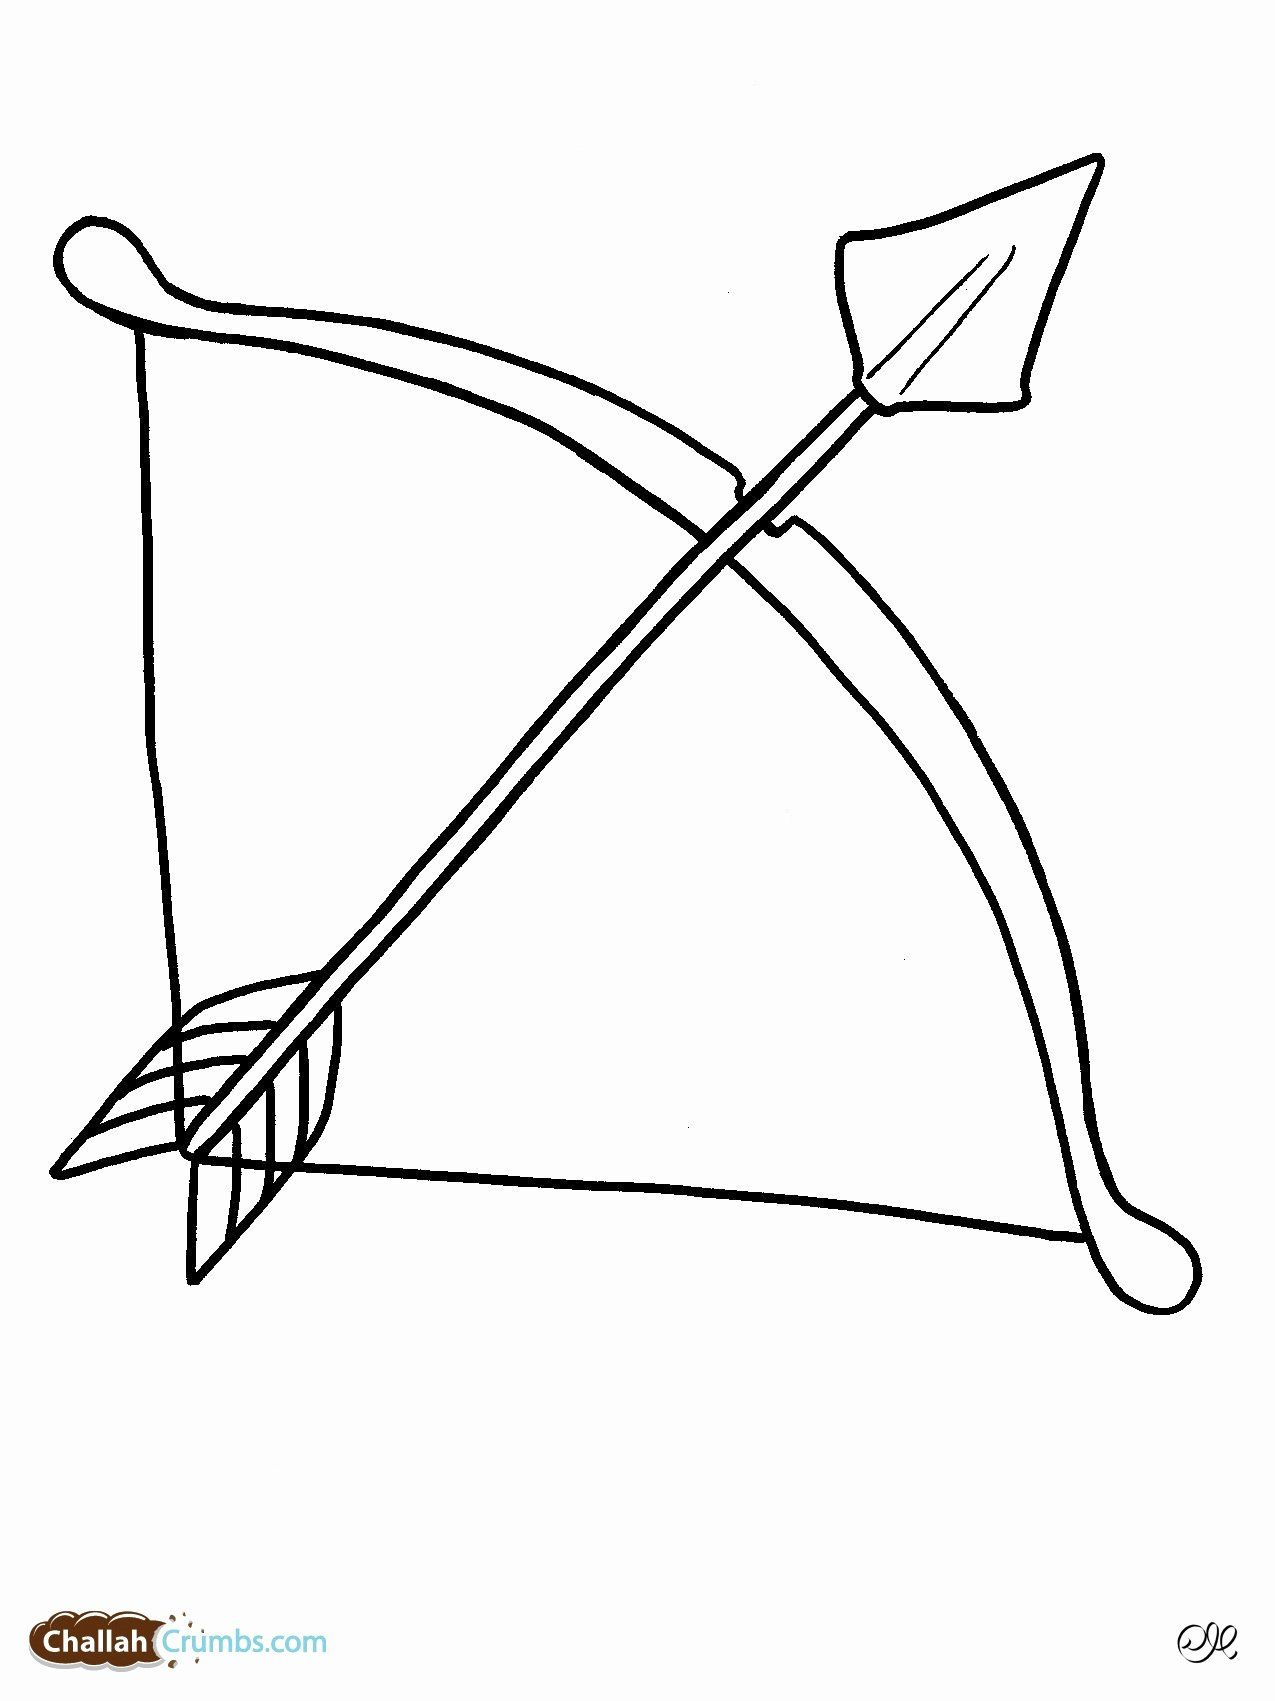 Bow And Arrow Coloring Page Unique Archery Arrow Drawing At Getdrawings In 2020 Arrow Drawing Coloring Pages Bow Drawing